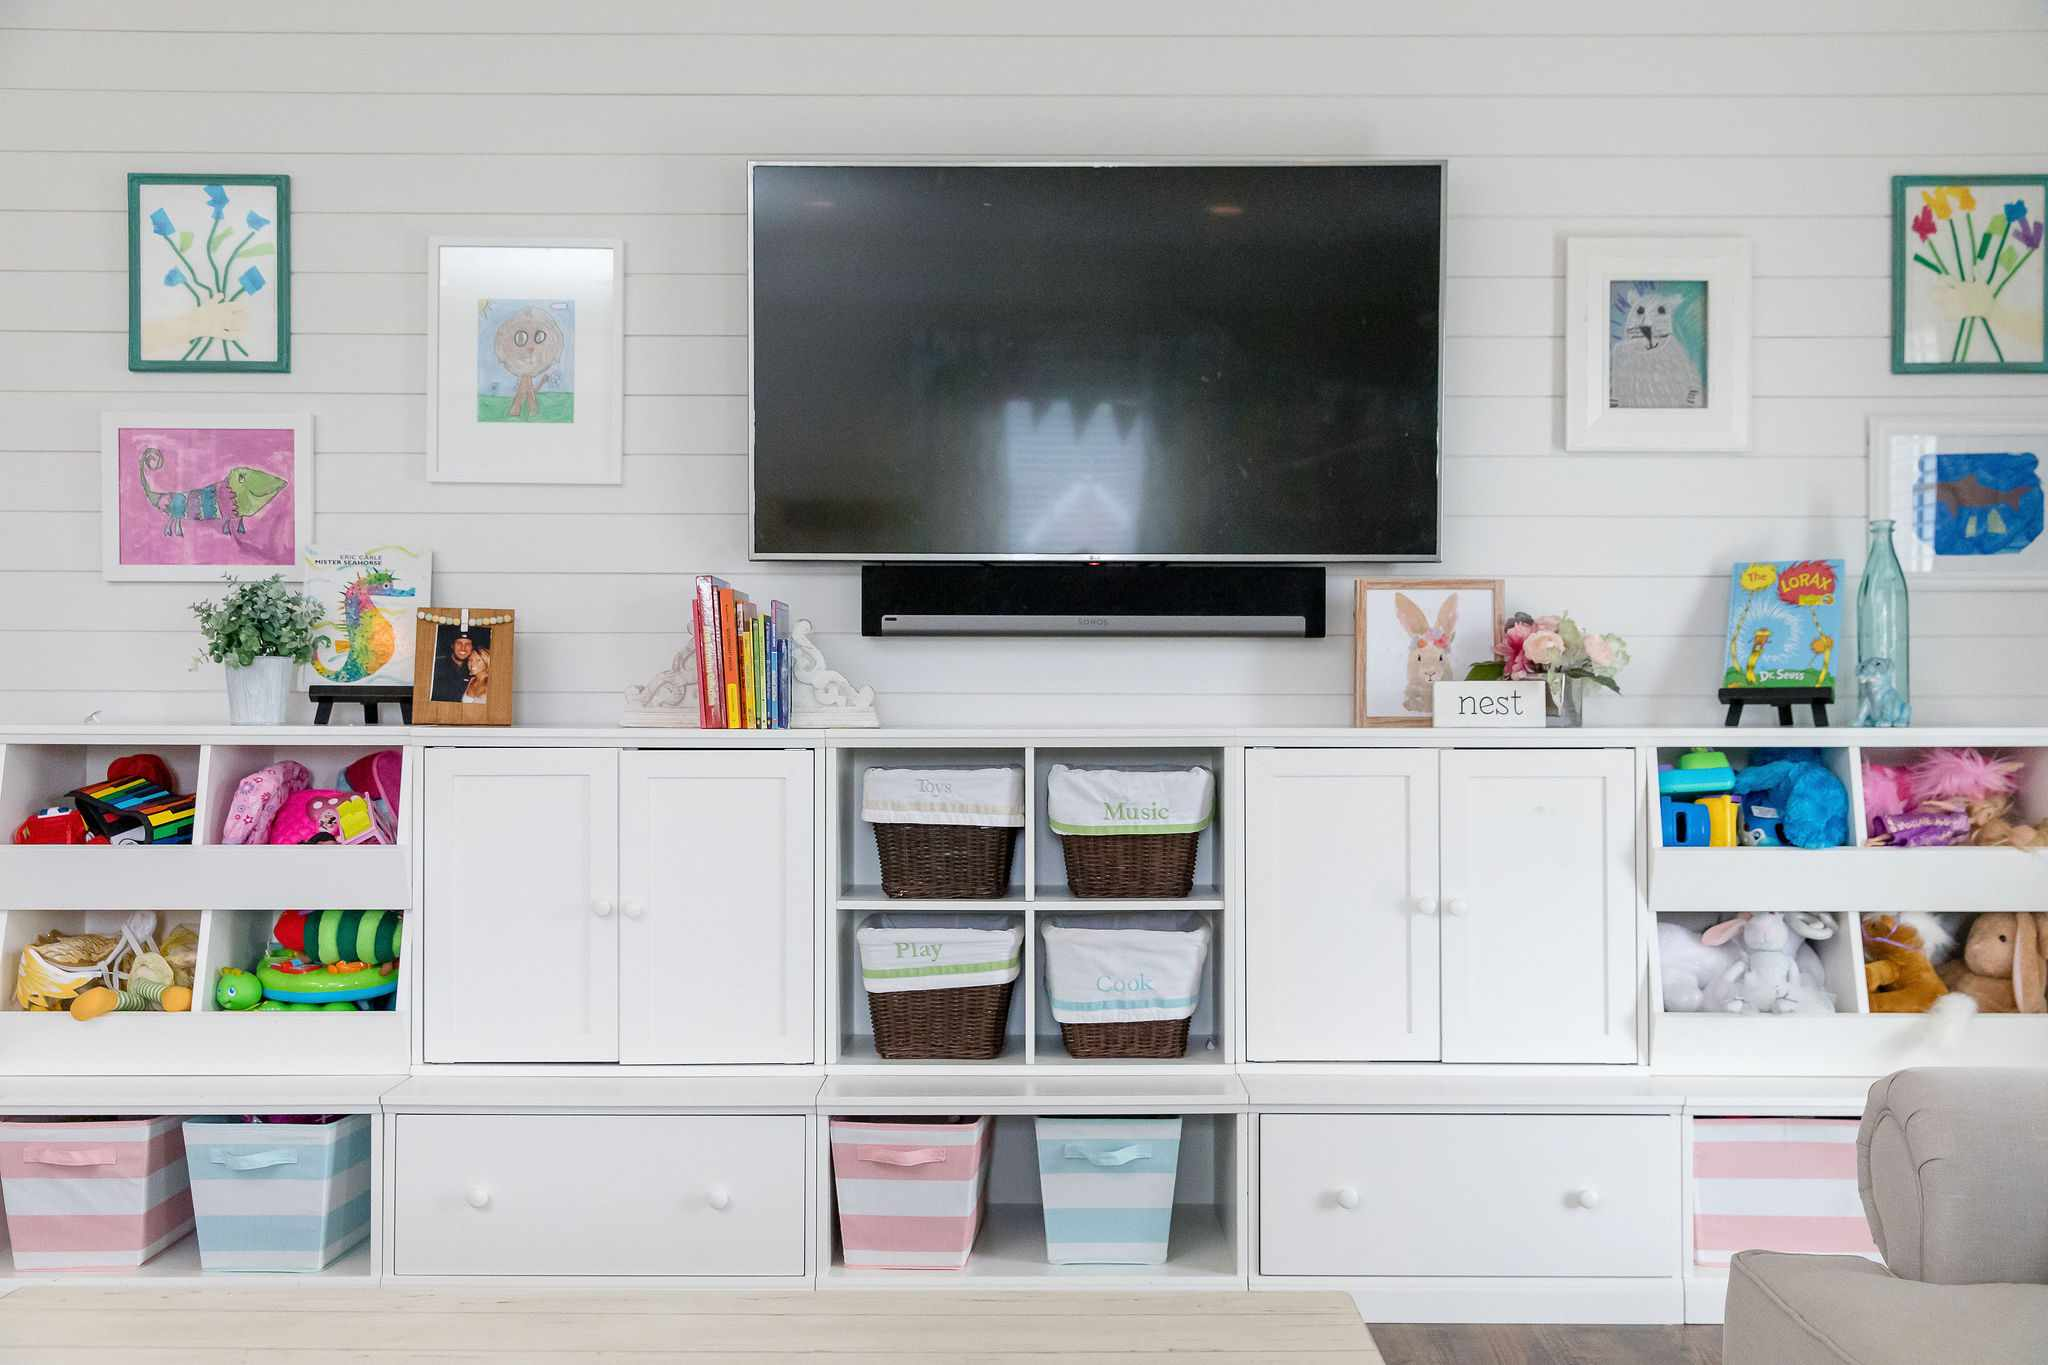 Color playroom with white cabinetry and wall-mounted television by Jenny Reimold